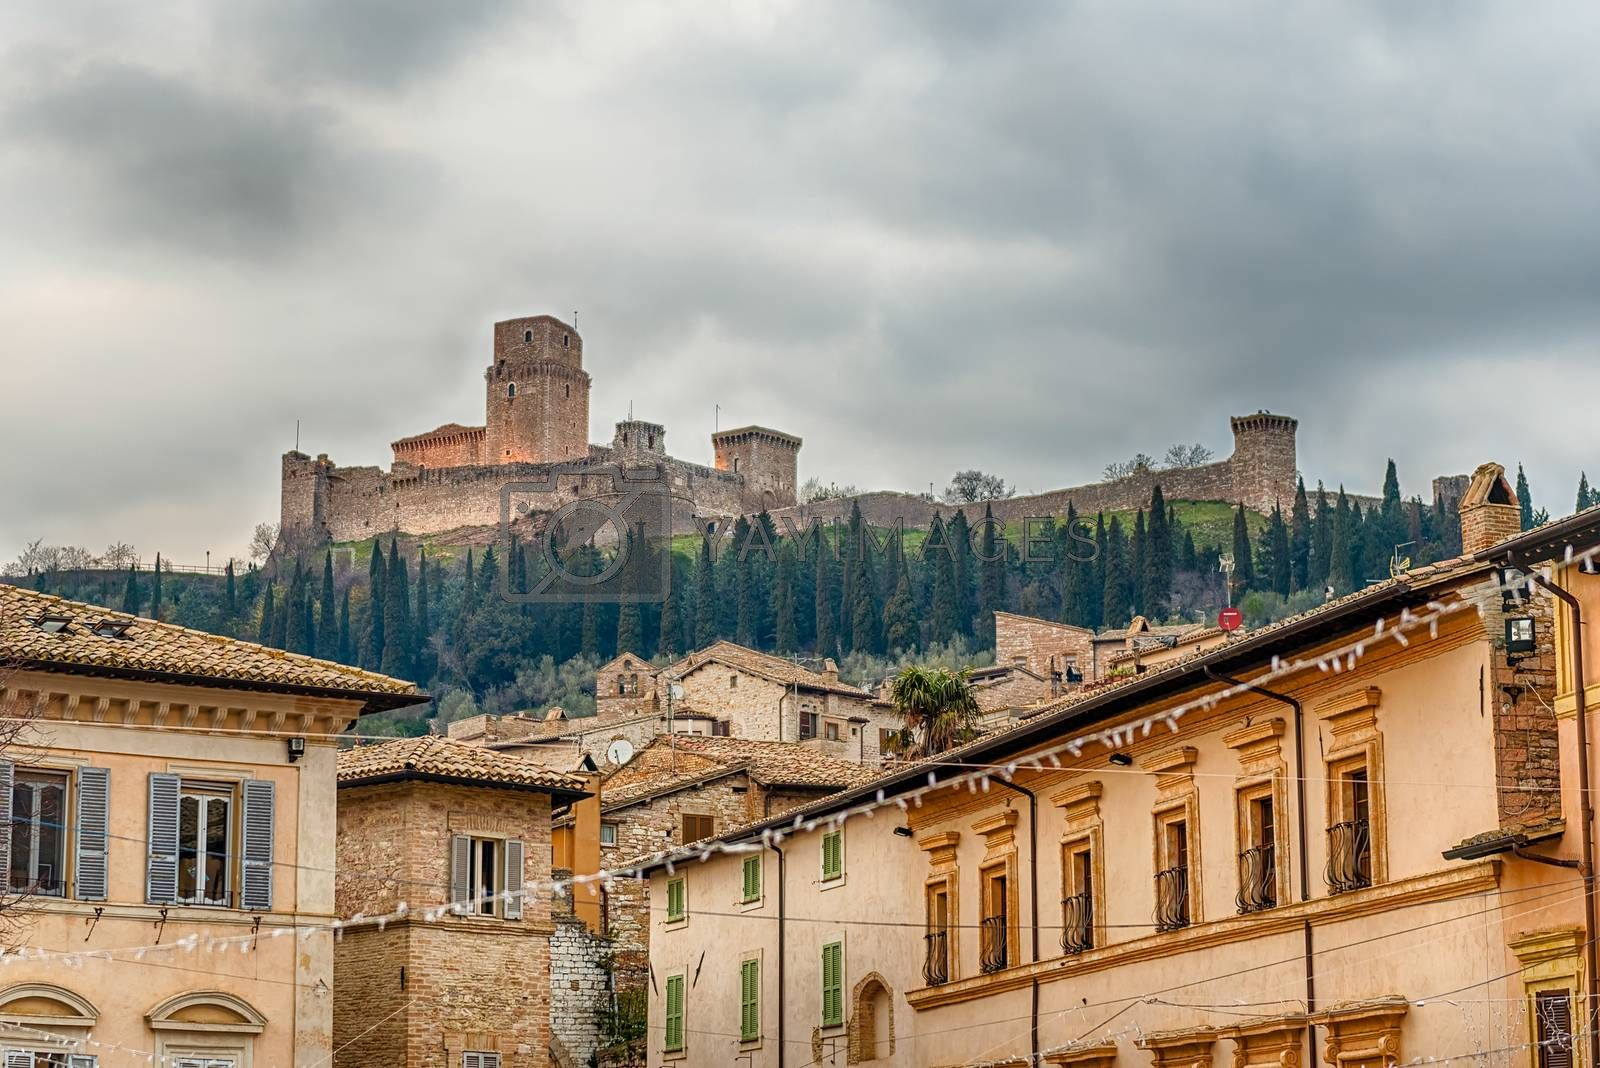 View of Rocca Maggiore, medieval fortress dominating the city of Assisi, one of the most beautiful medieval towns in central Italy